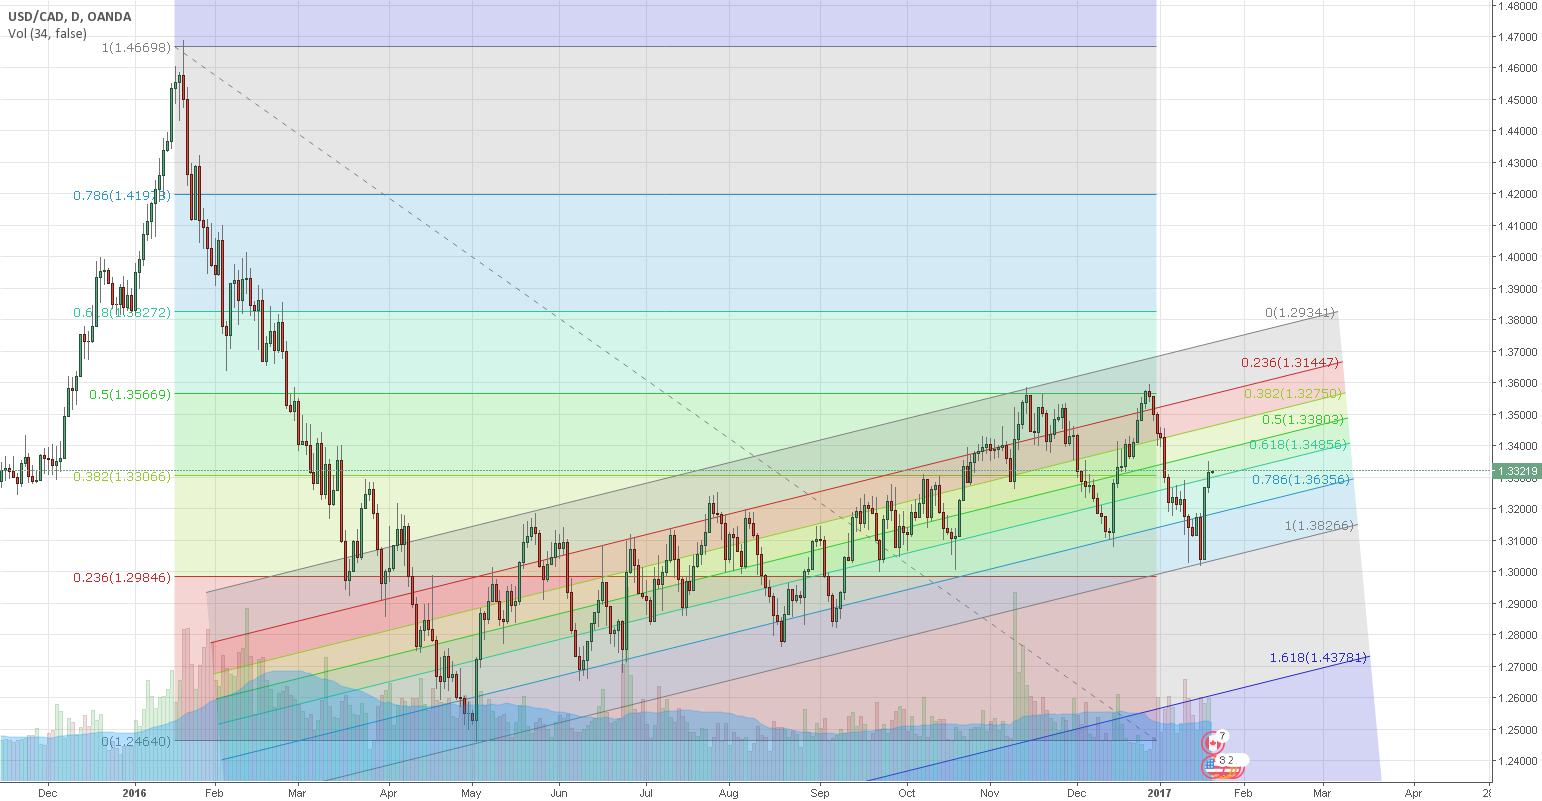 Bearish channel usdcad